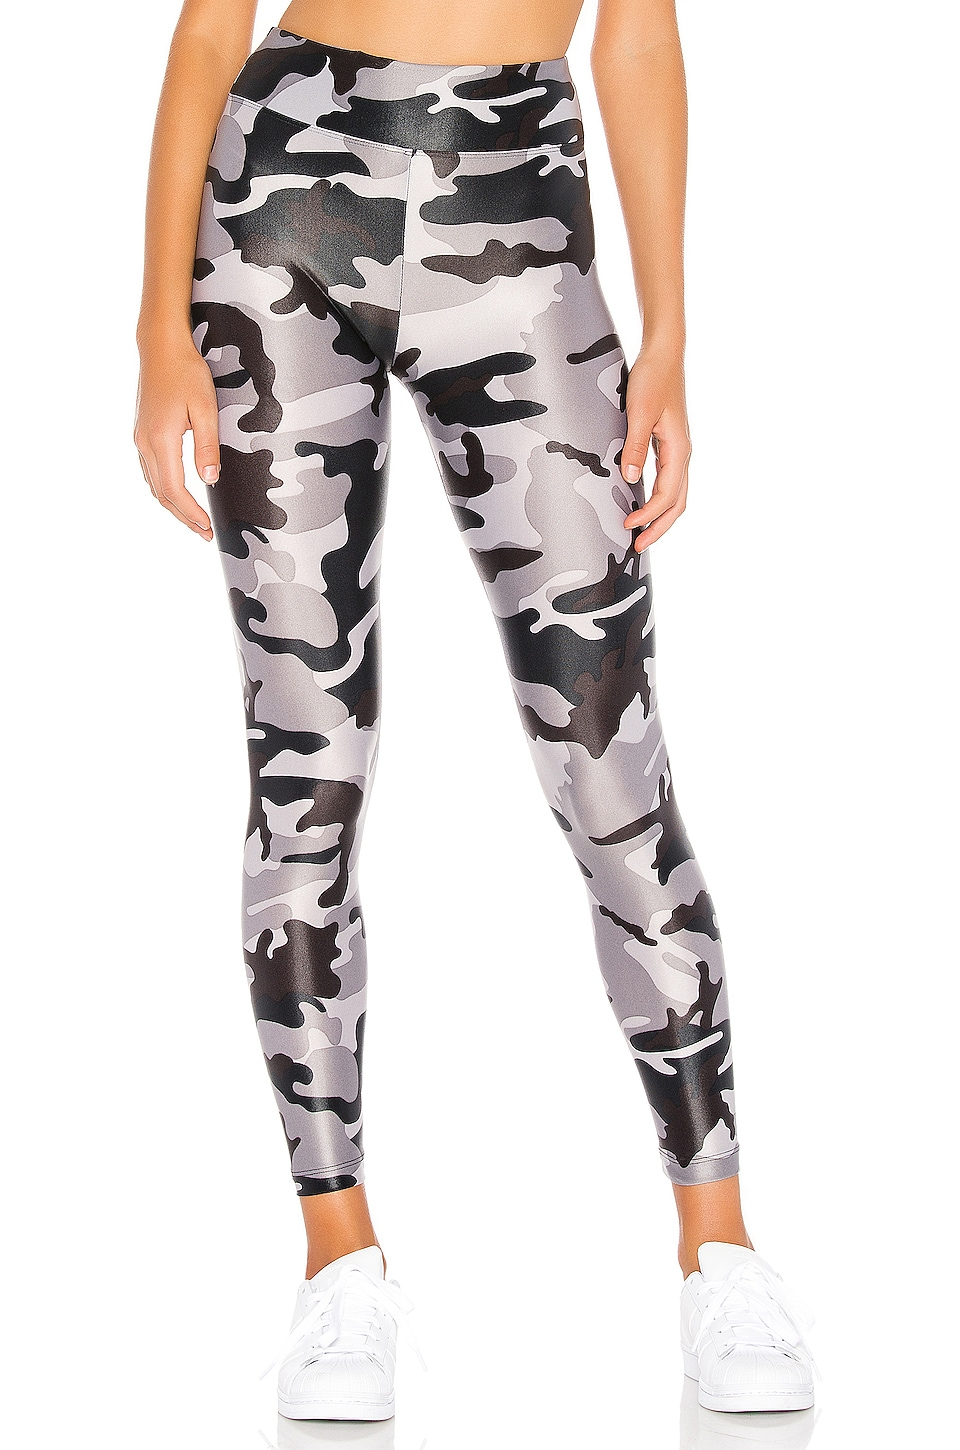 KORAL Lustrous High Rise Legging in Lead Camo